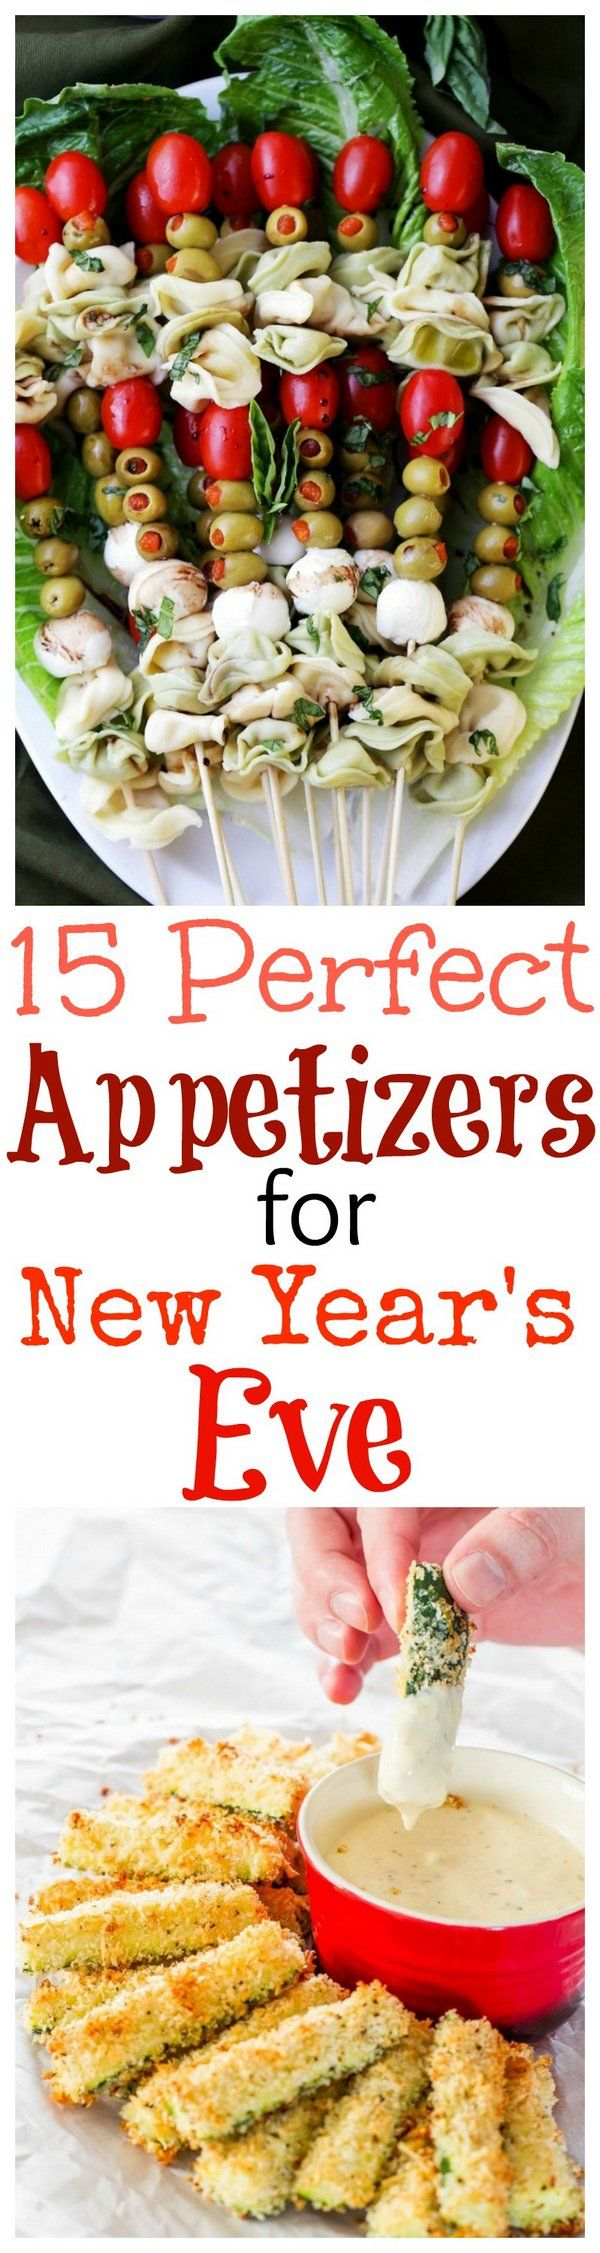 15 Must-Make Appetizers for New Year's Eve